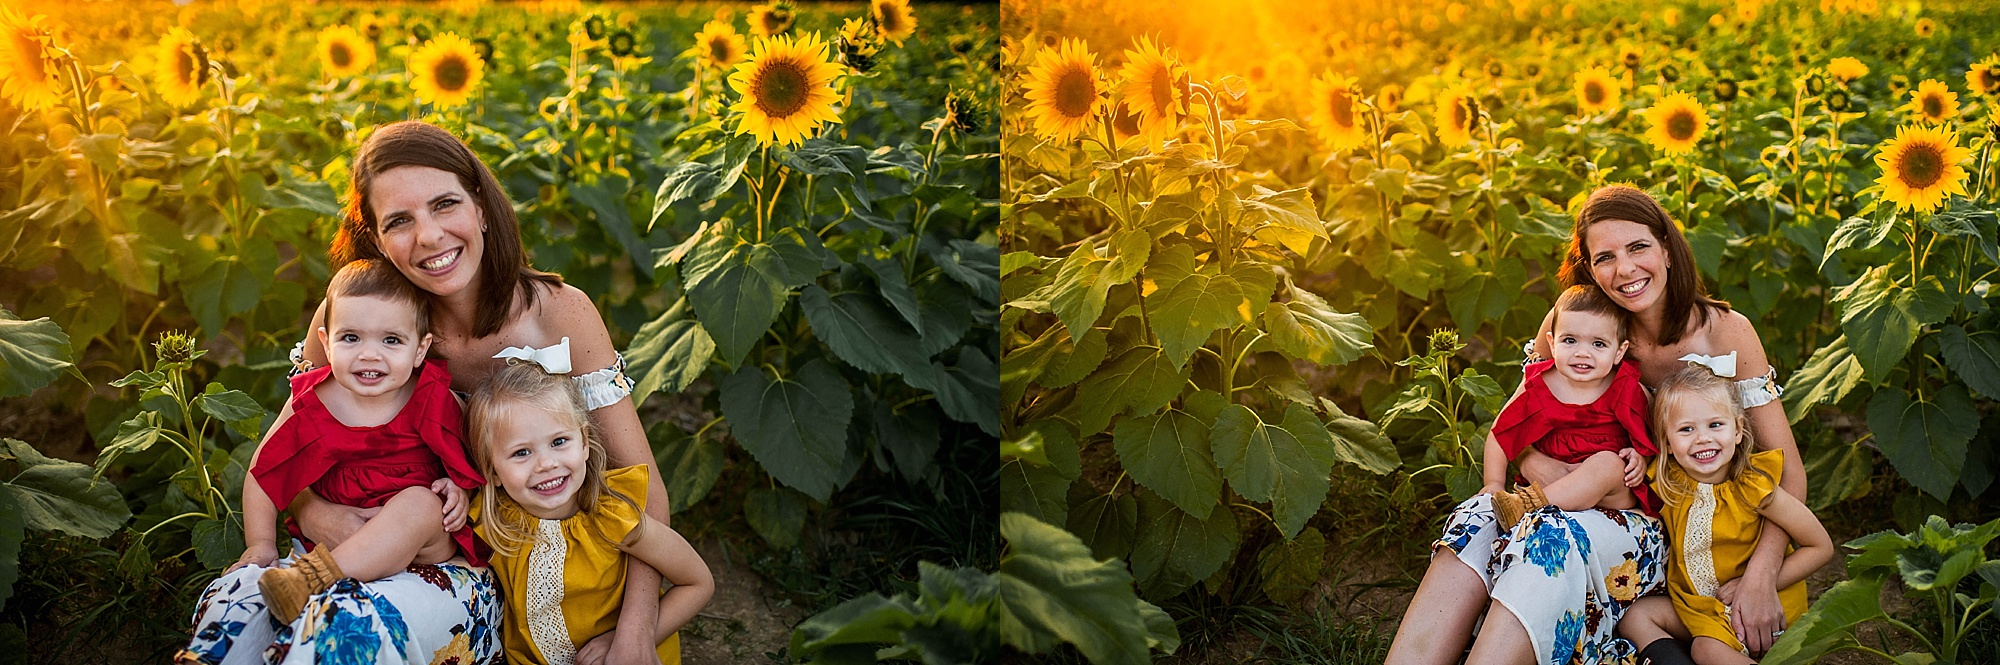 lauren-grayson-photography-cleveland-ohio-photographer-sunflower-fields-sunset-golden-hour-photo-shoot-mommy-and-me-family-child-photographer_0560.jpg